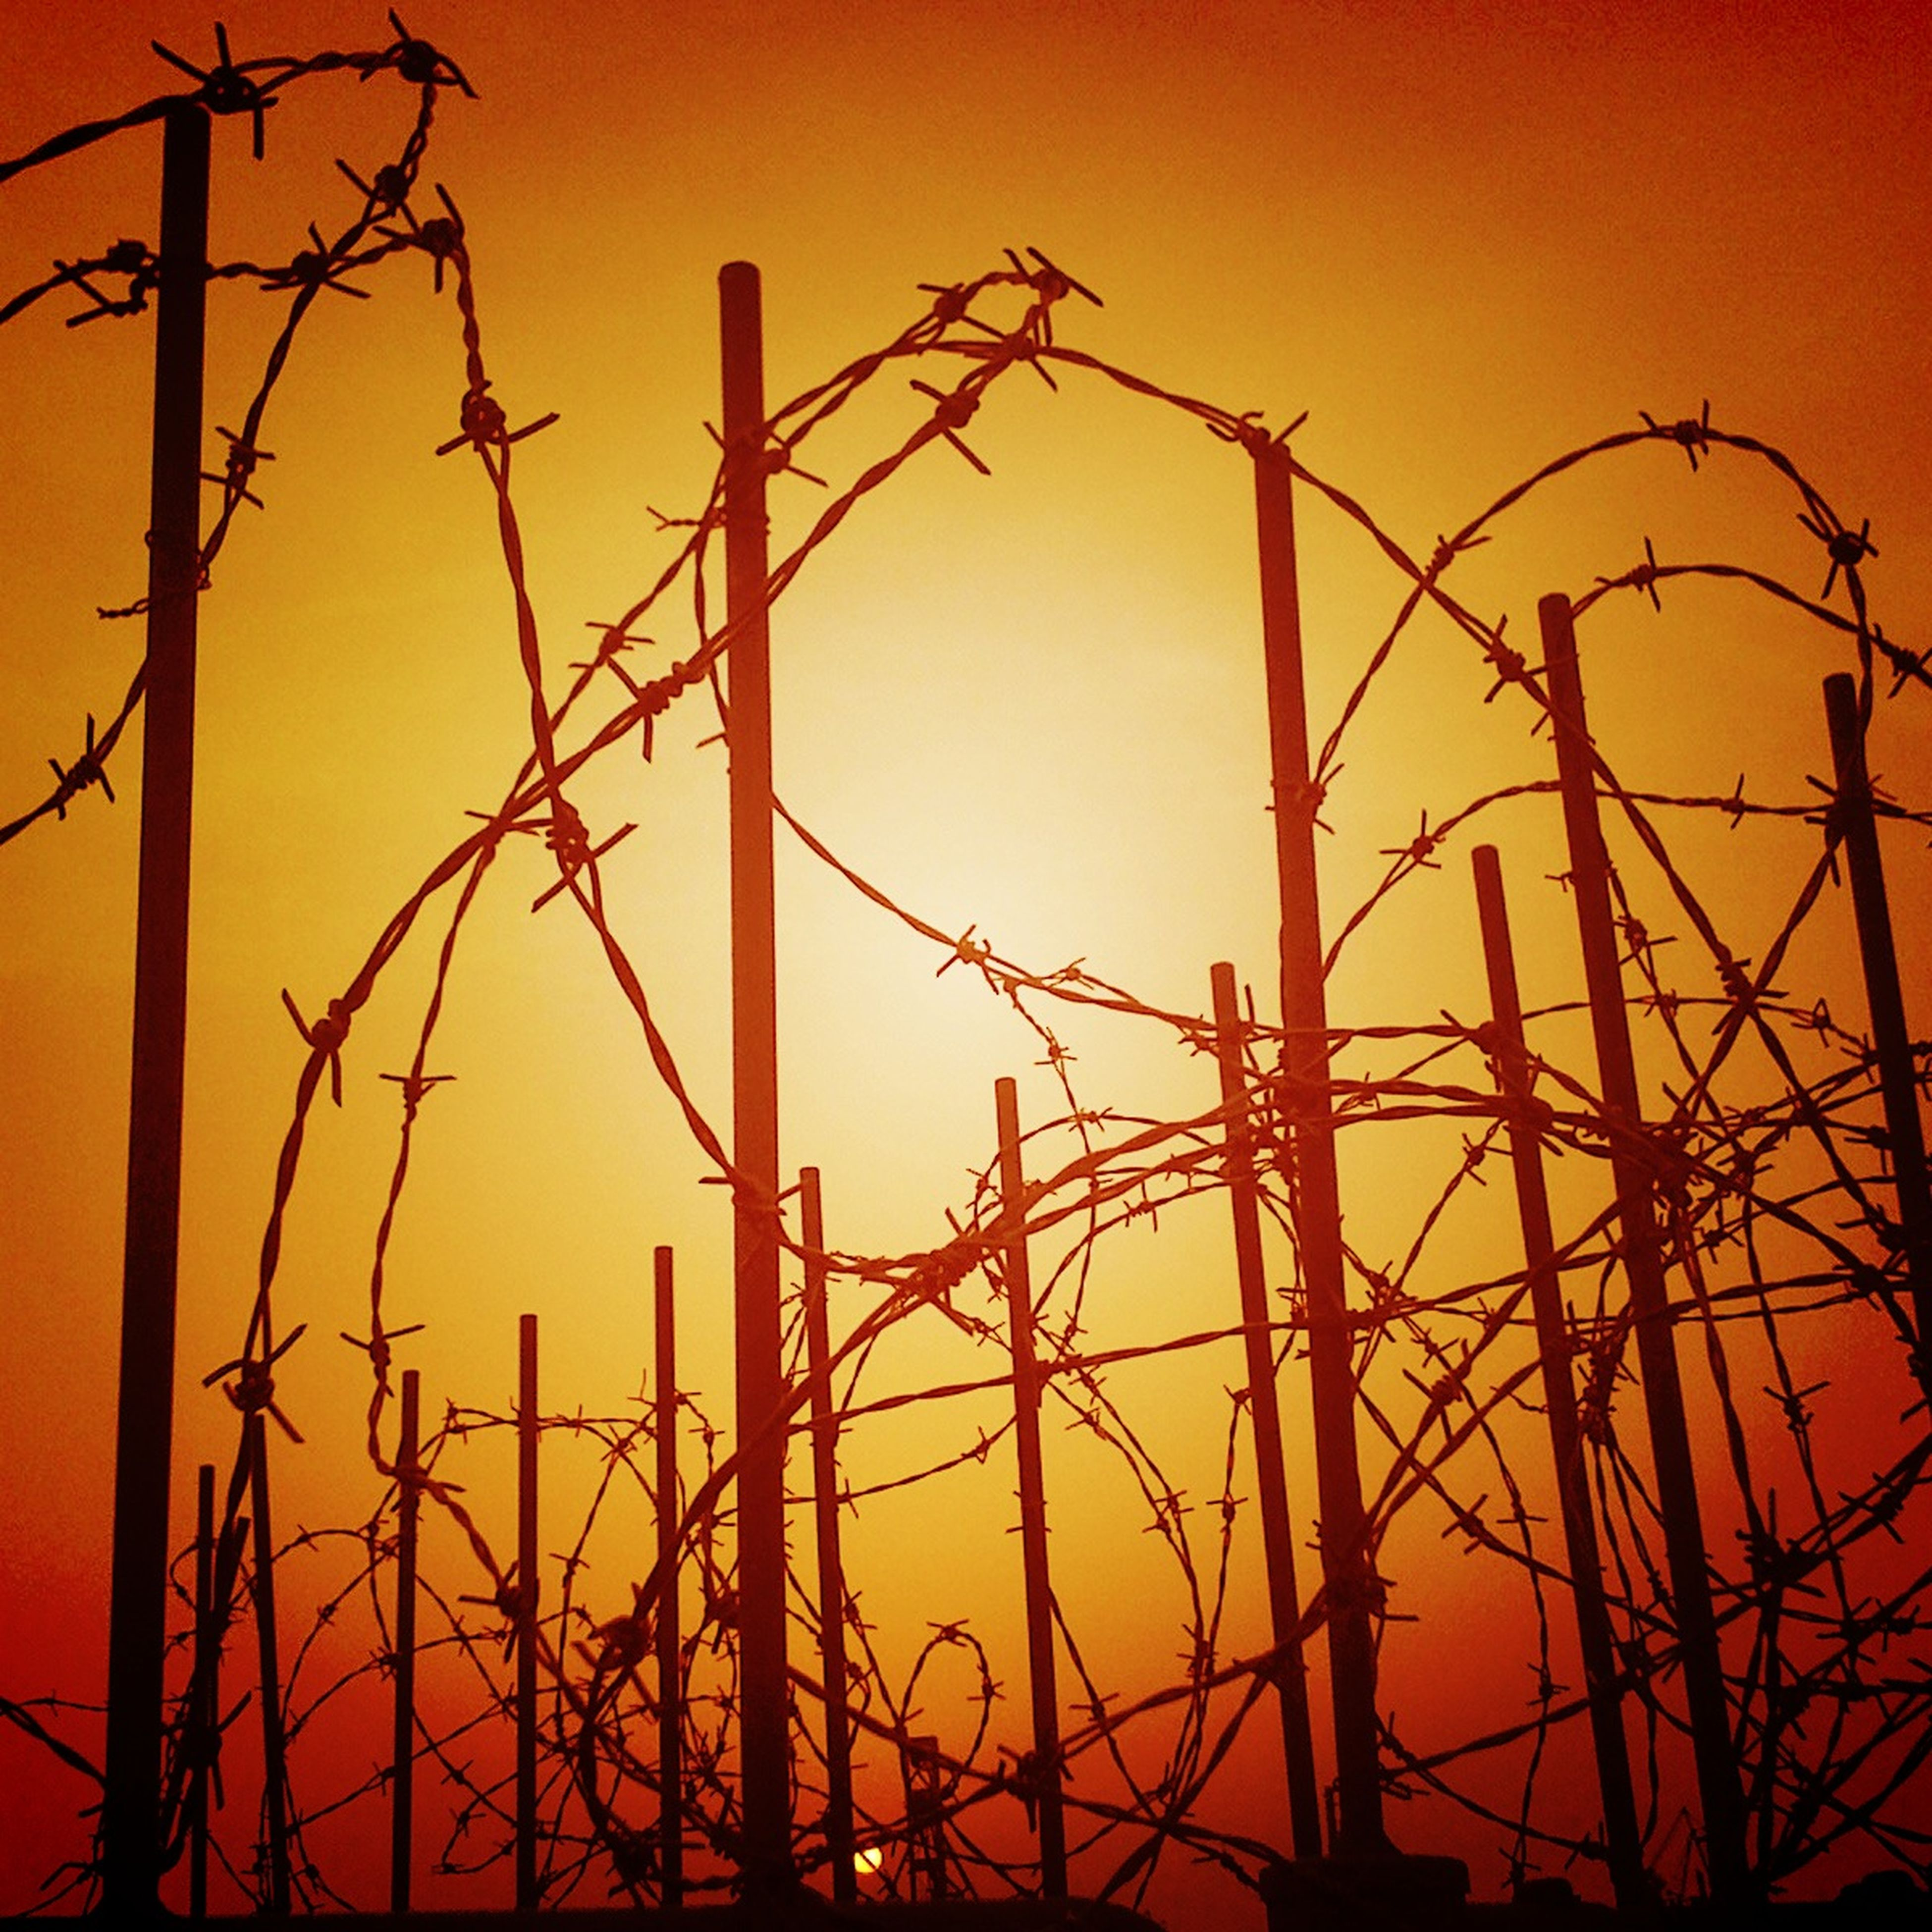 sunset, orange color, silhouette, metal, sky, electricity pylon, low angle view, safety, clear sky, protection, chainlink fence, electricity, connection, fence, power supply, no people, outdoors, nature, power line, metallic